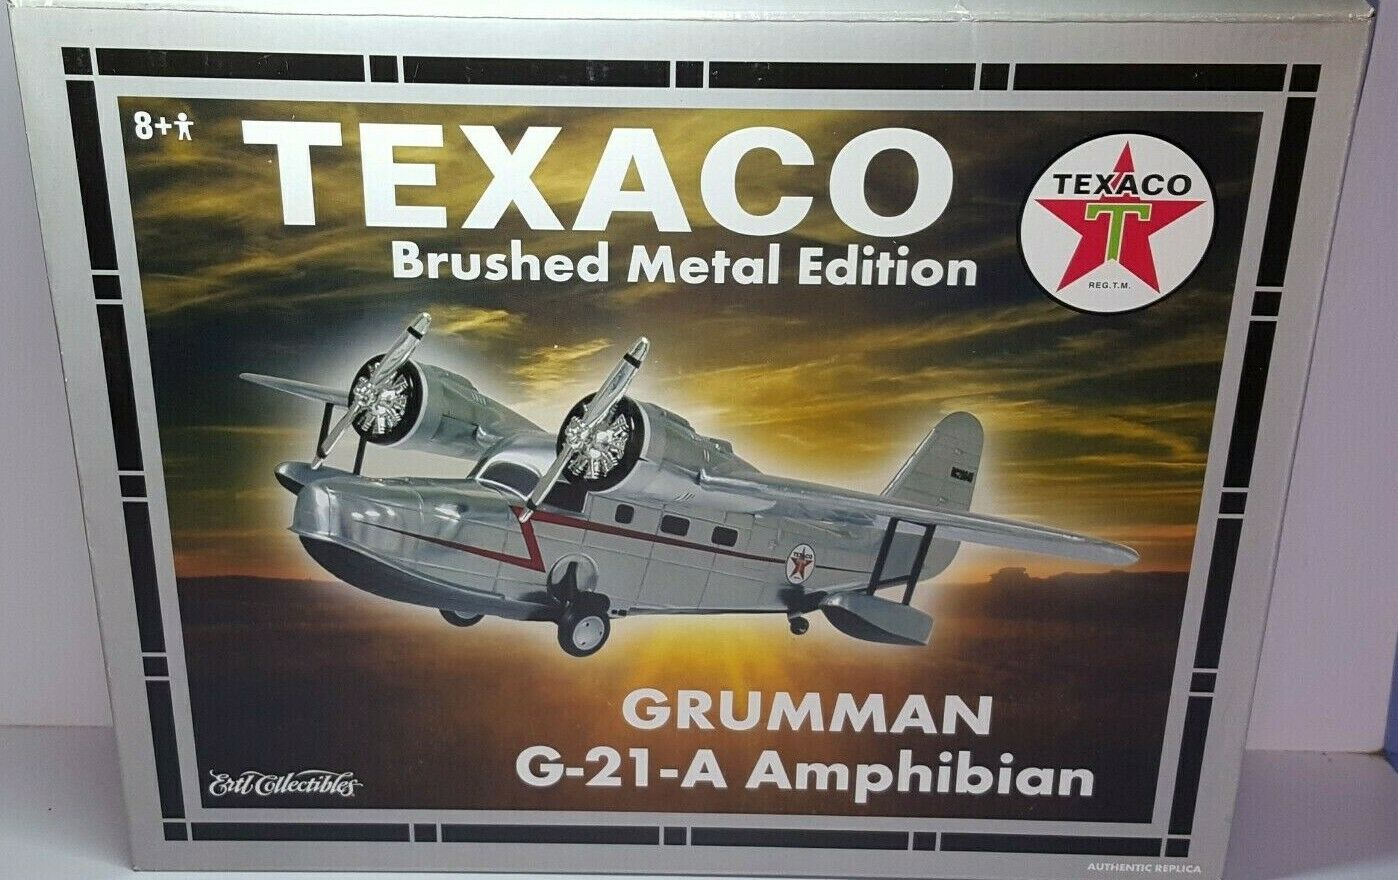 1 38 ERTL WINGS OF TEXACO  16 GRUMhomme  G-21-A AMPHIBIAN BRUSH METAL EDITION  loisir